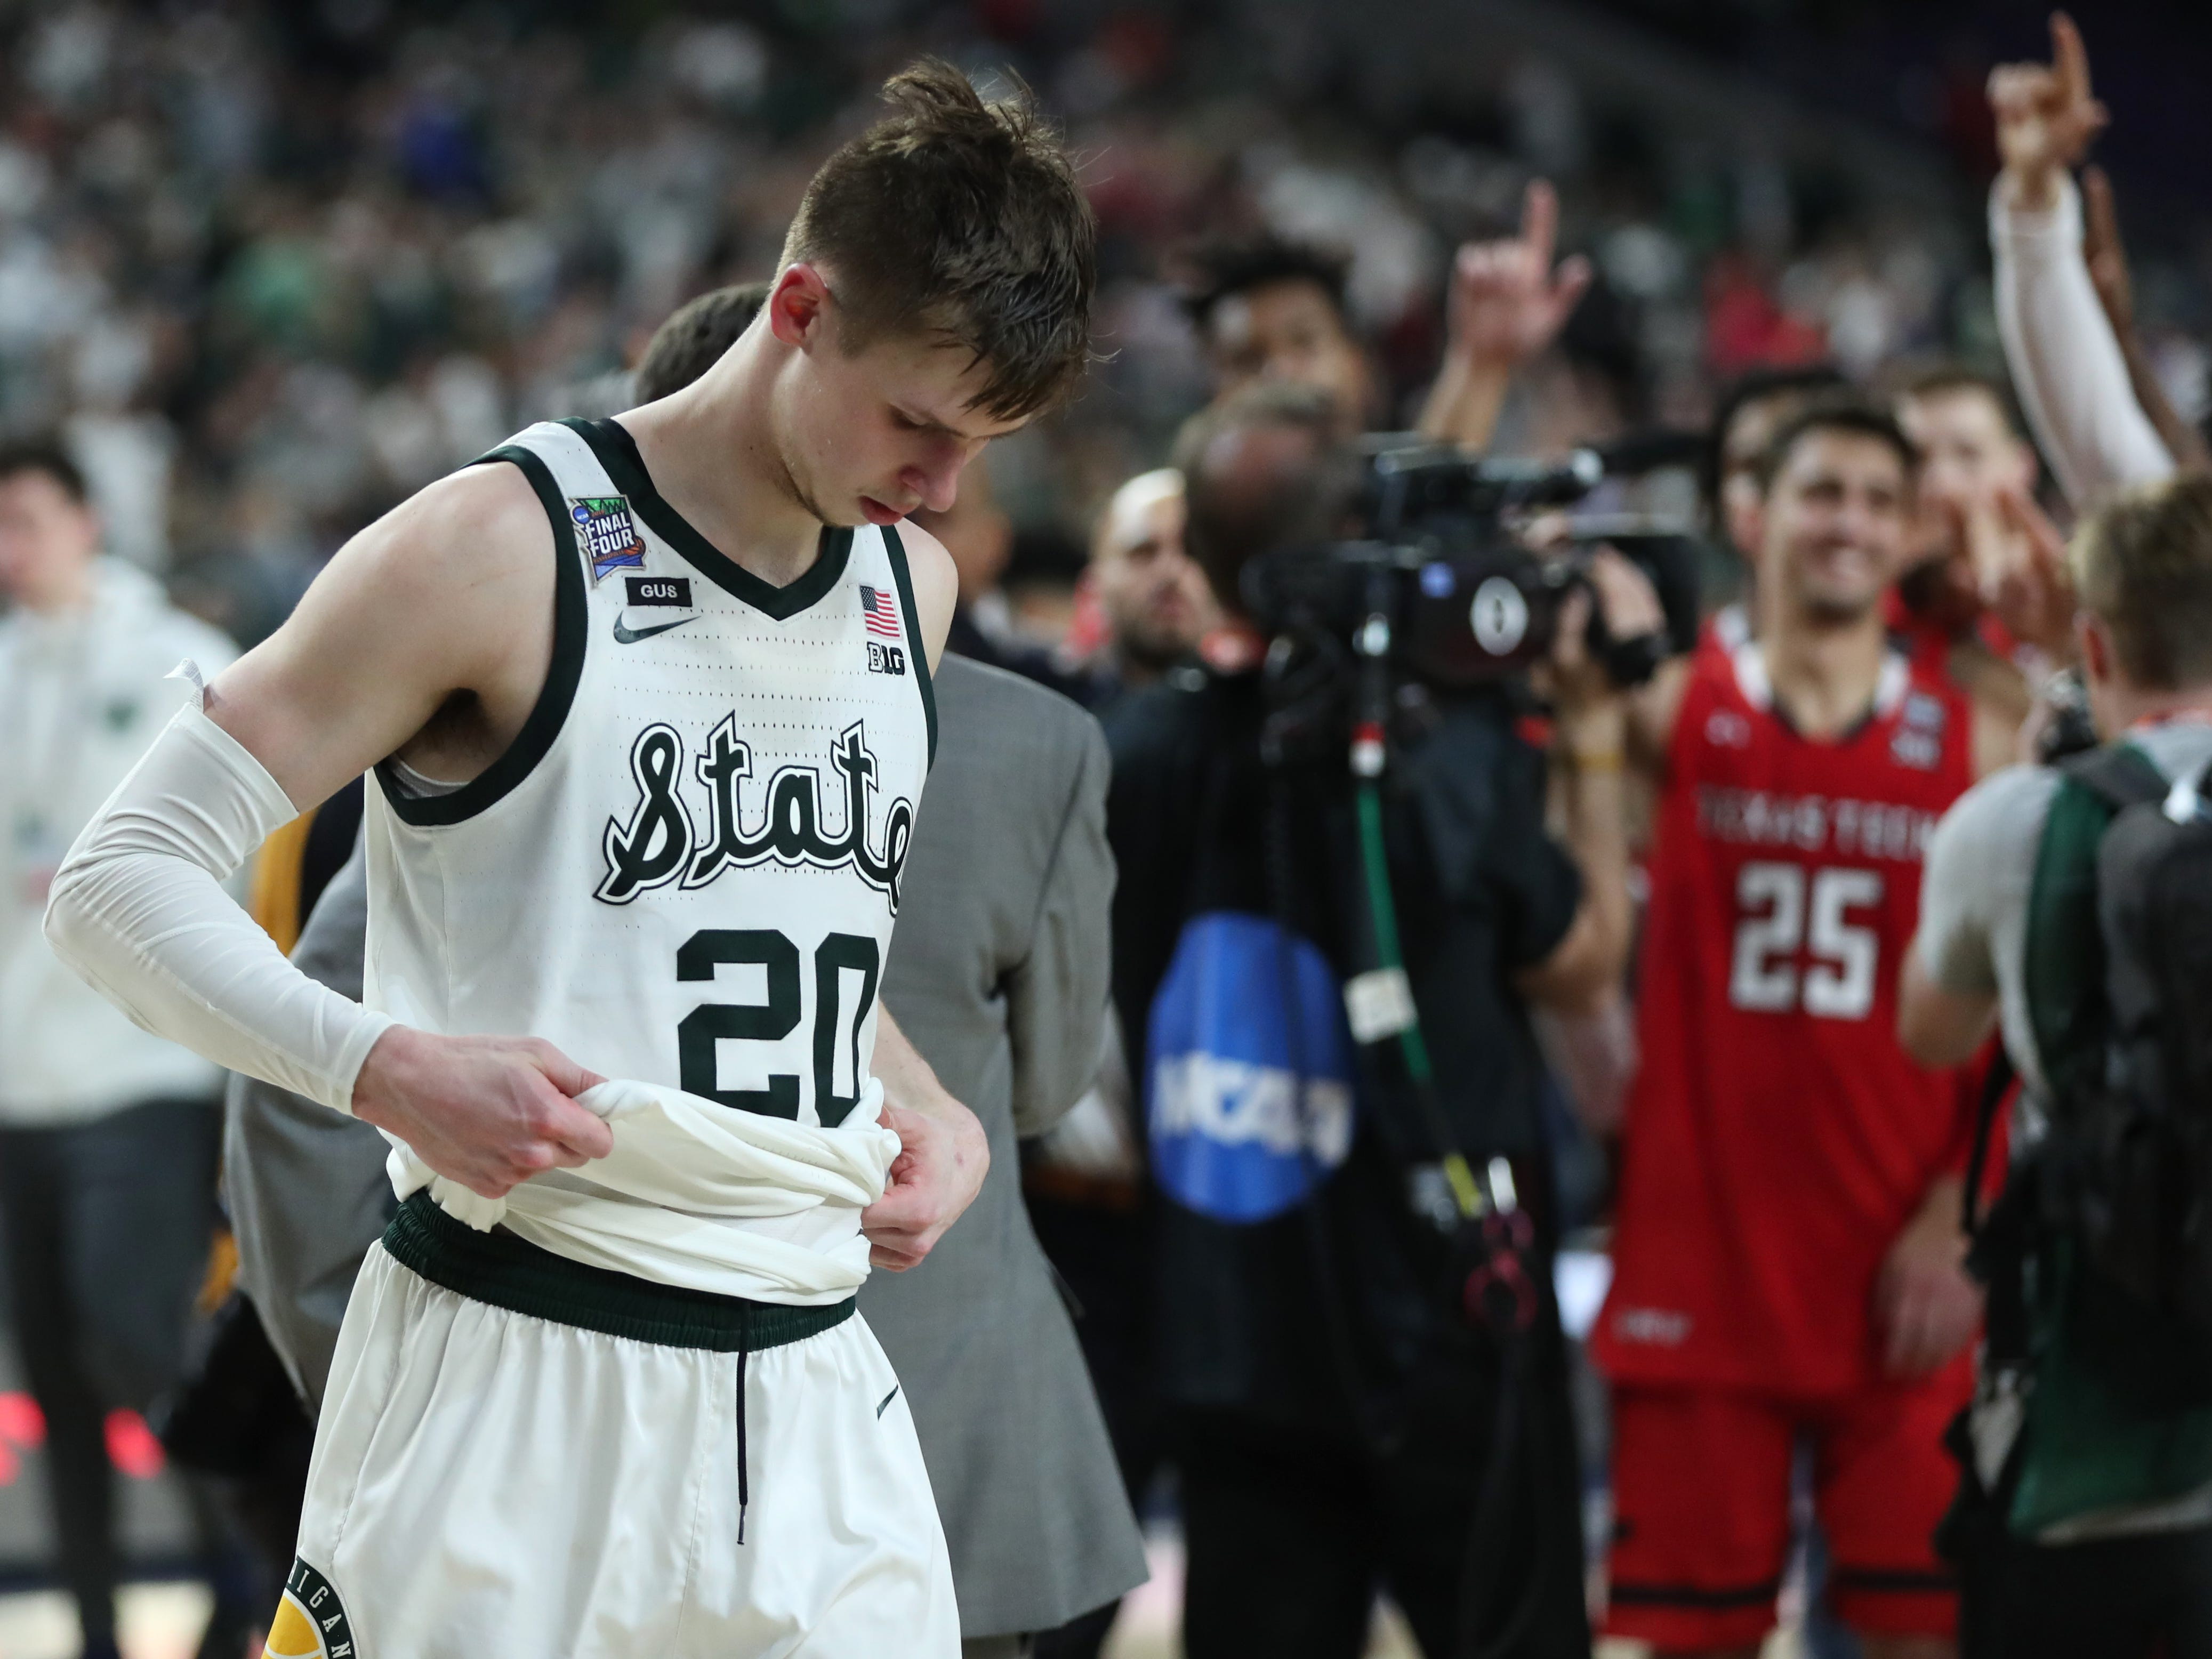 Michigan State guard Matt McQuaid walks off the court after losing in the Final Four to Texas Tech, 61-51, at U.S. Bank Stadium in Minneapolis, Minnesota on Saturday, April 6, 2019.